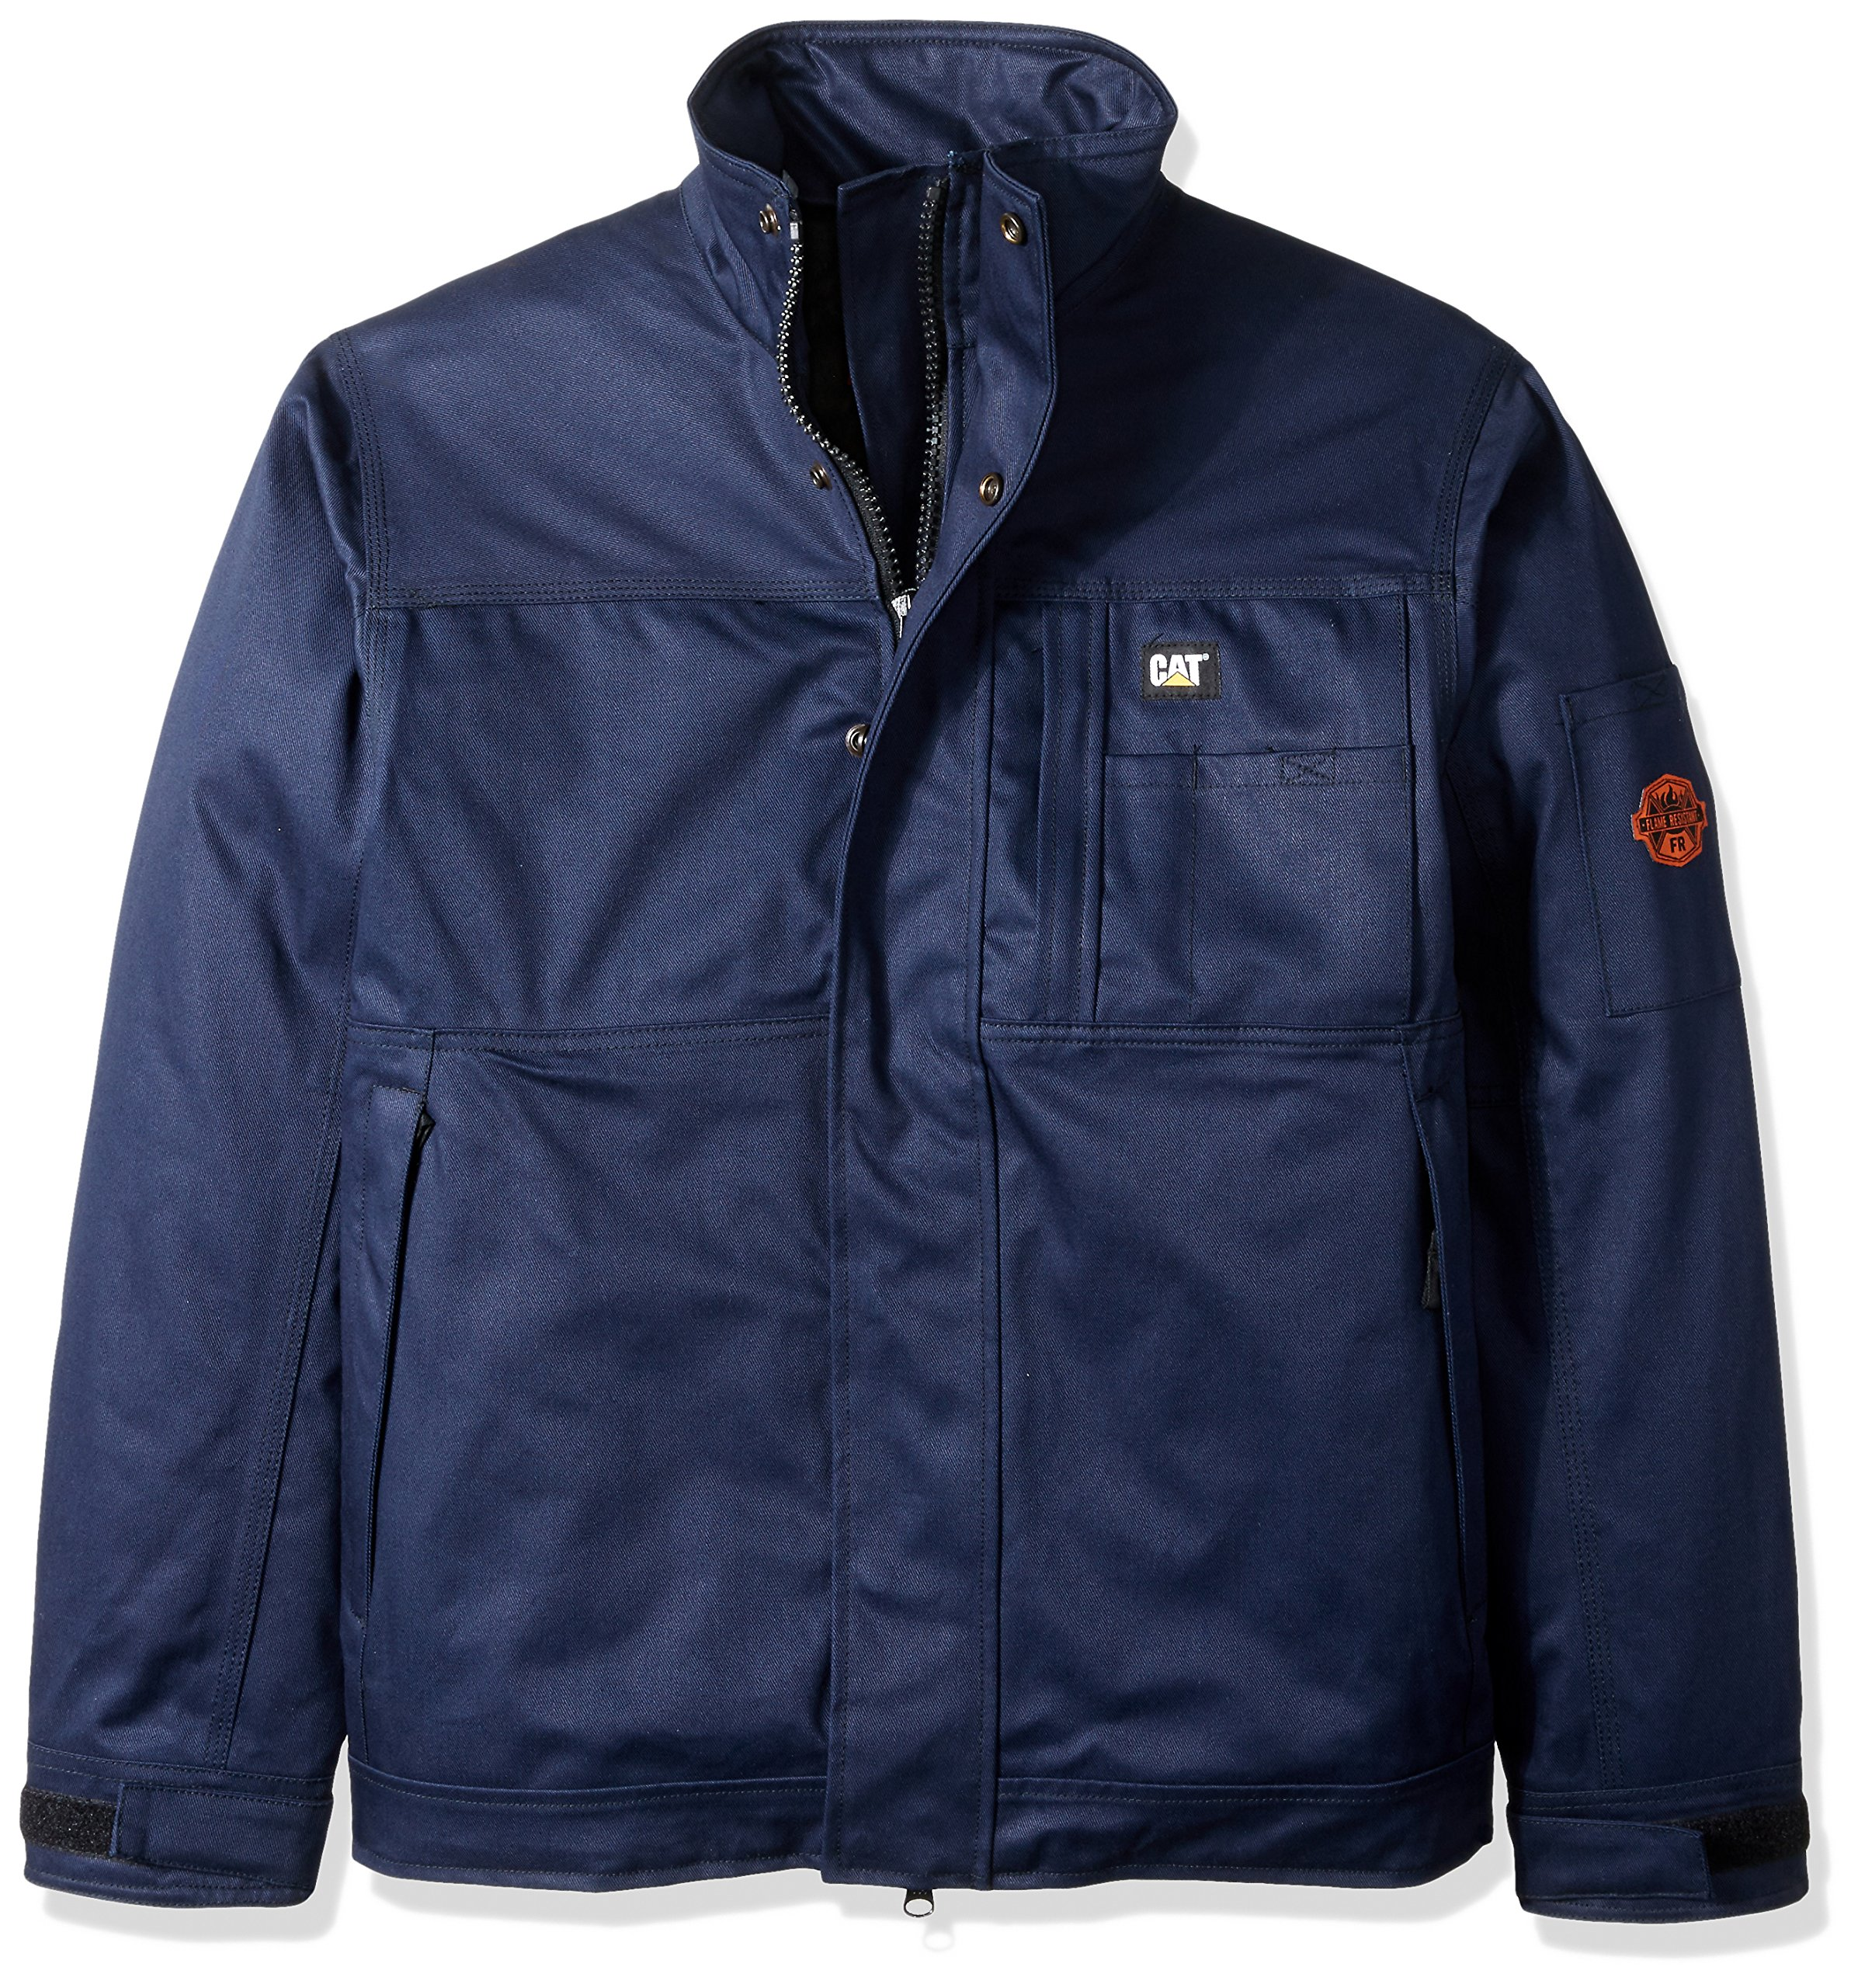 Caterpillar Men's Flame Resistant Insulated Jacket, Flame Resistant Navy, Large